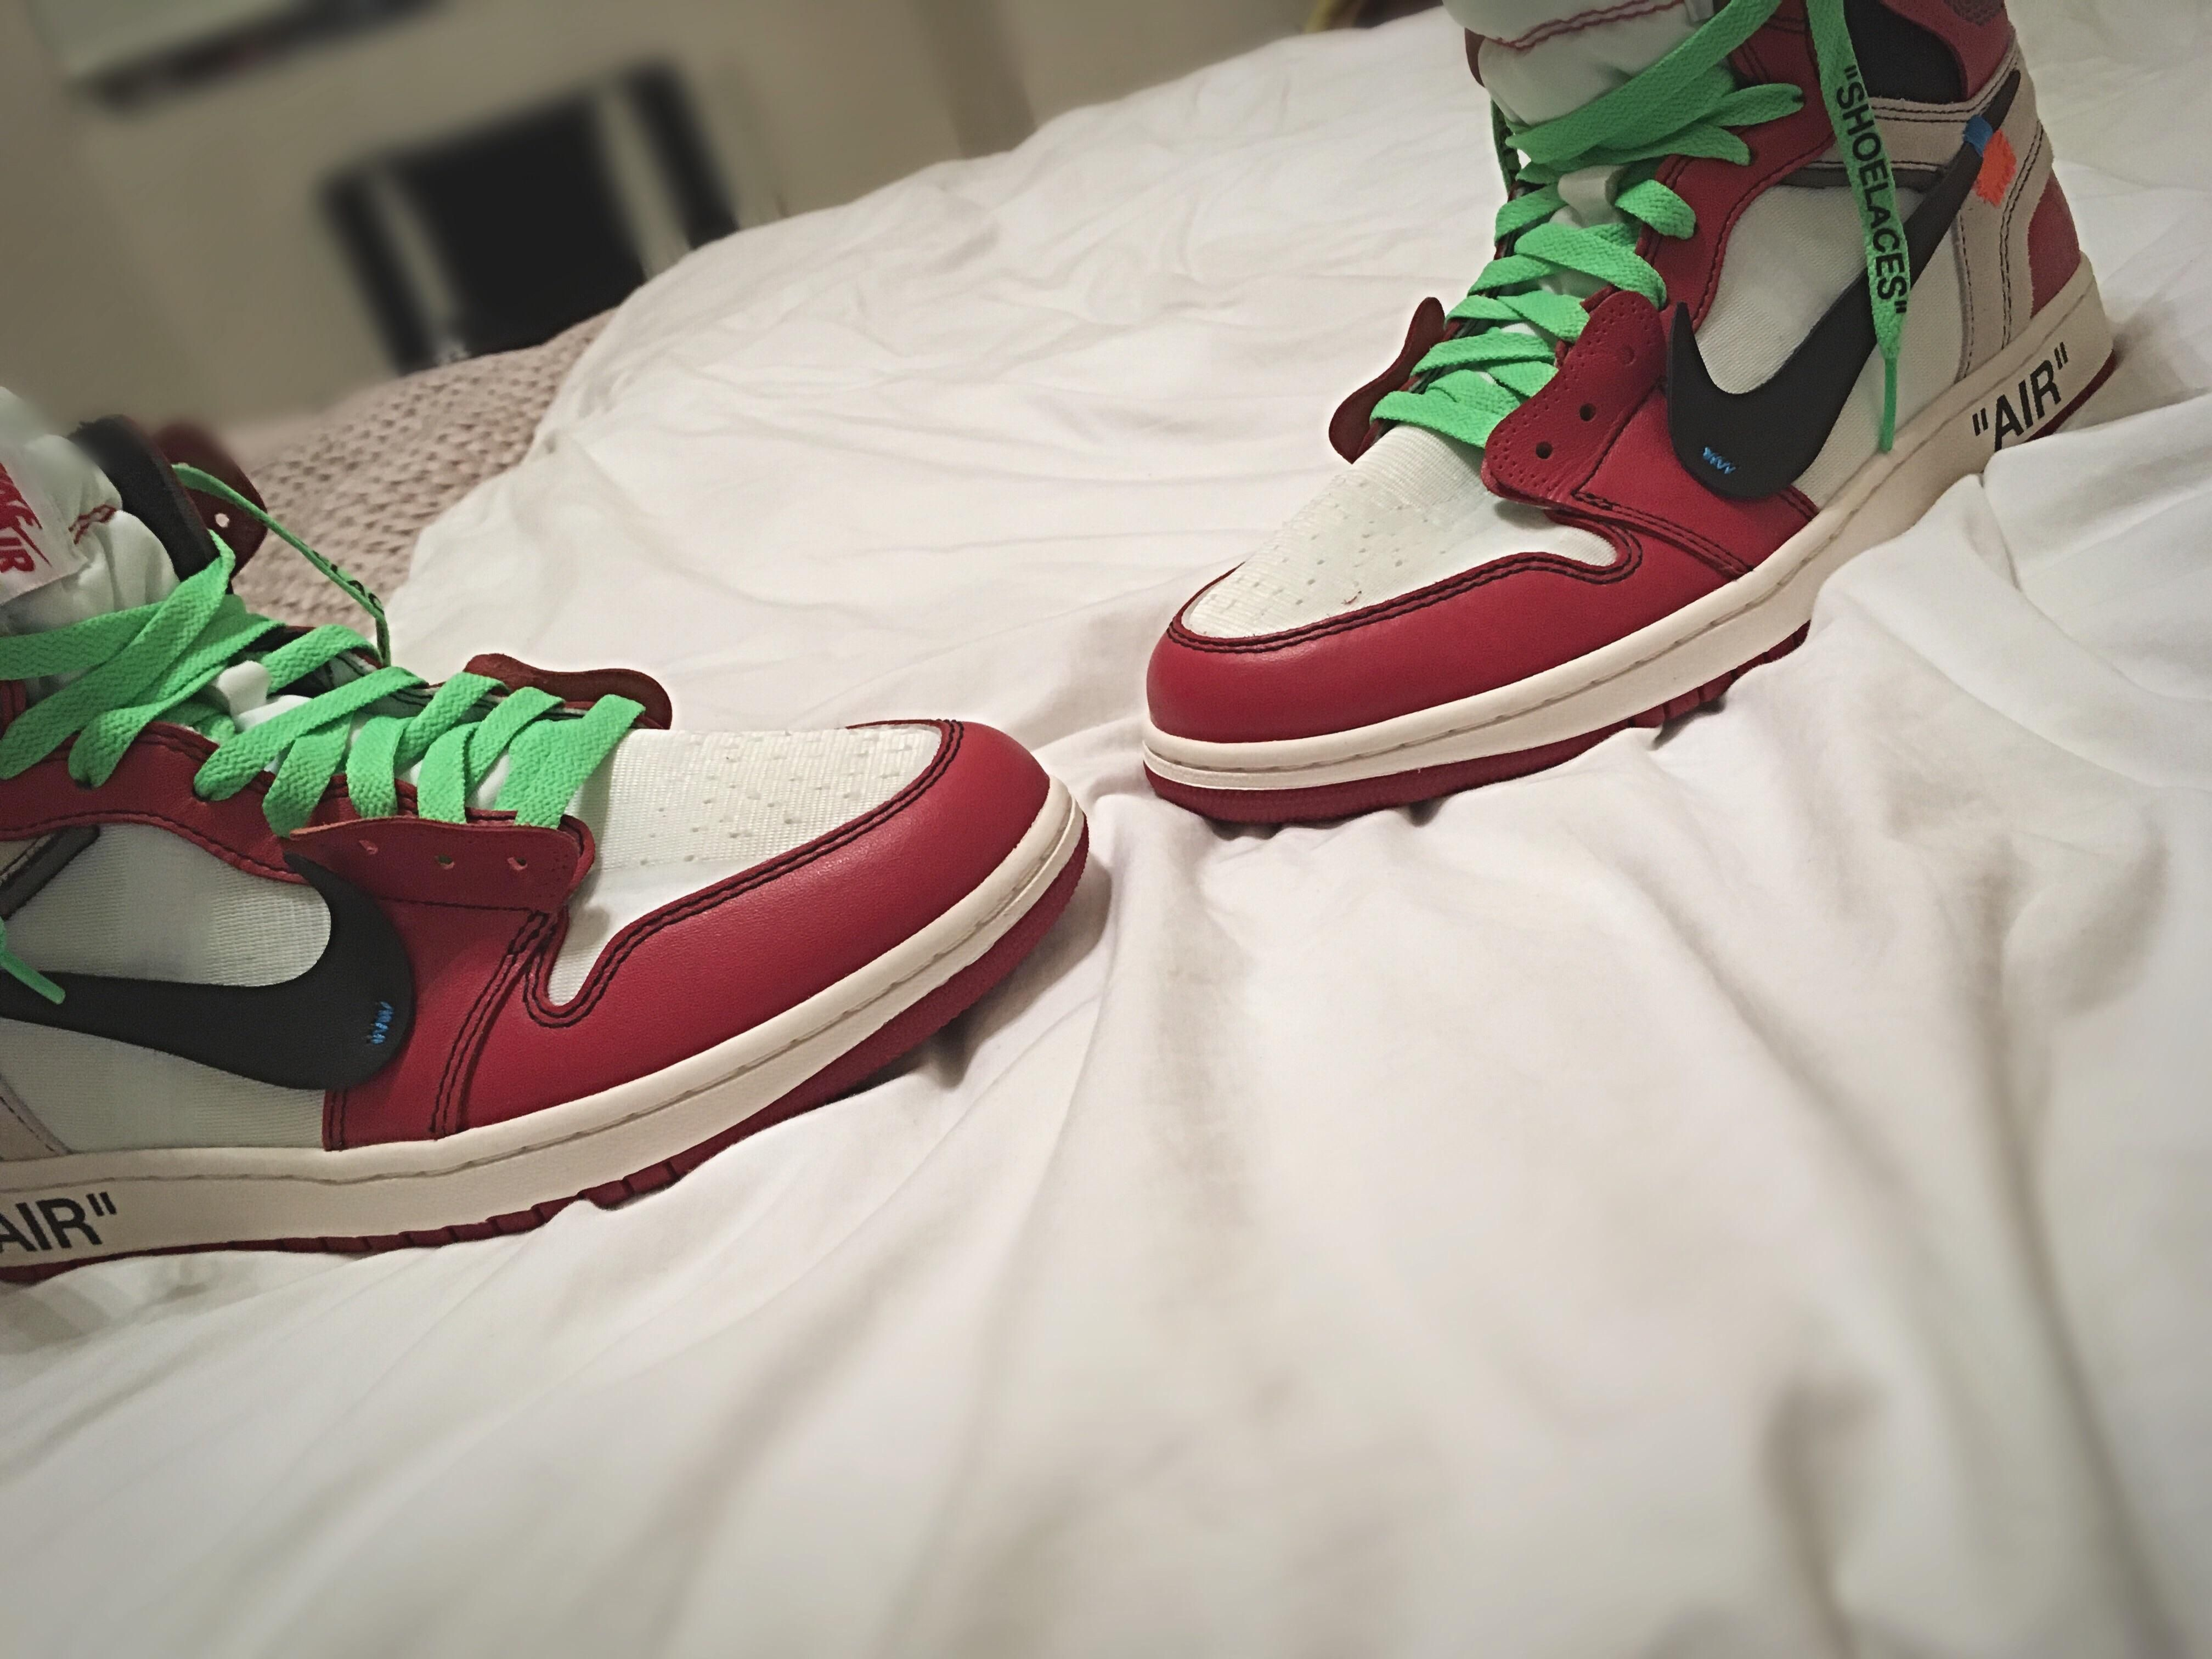 Just put green laces in my off white Jordan 1